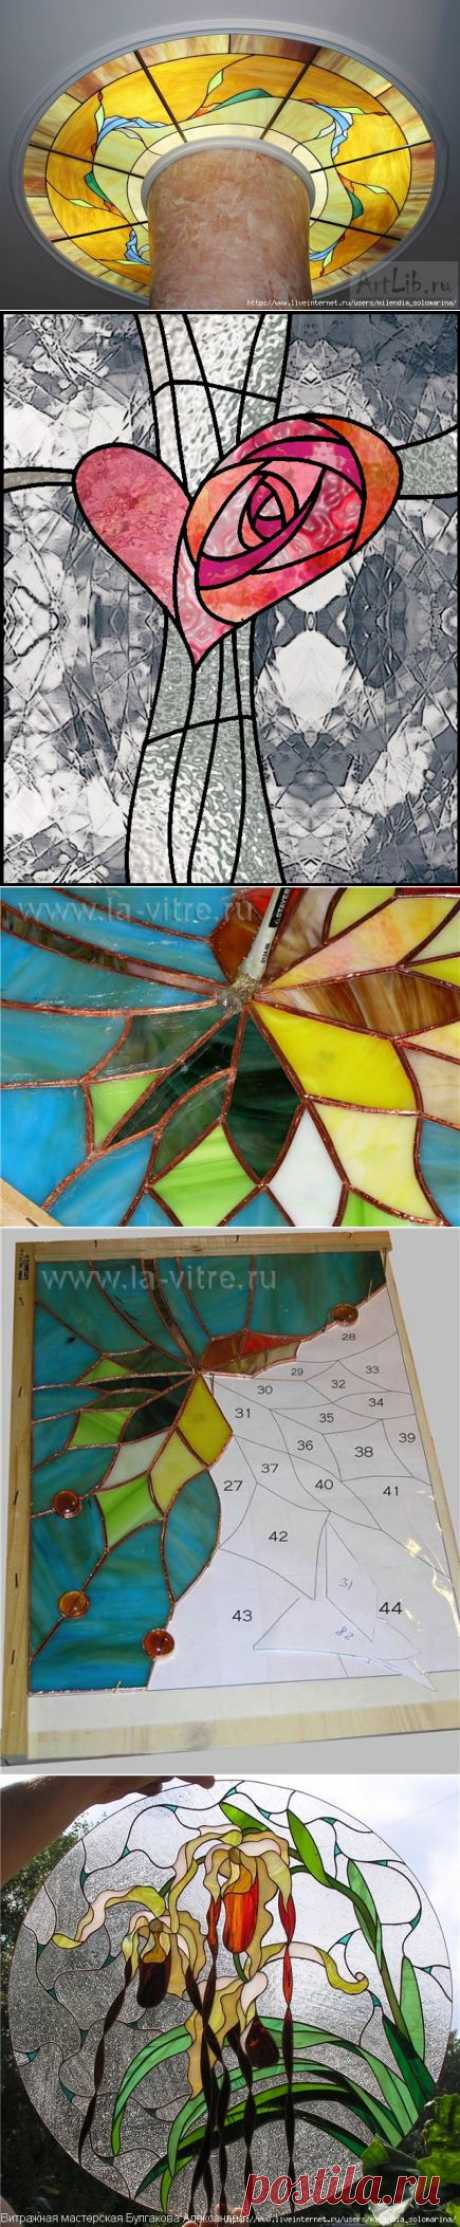 Imitation of a jellied stained-glass window the hands.